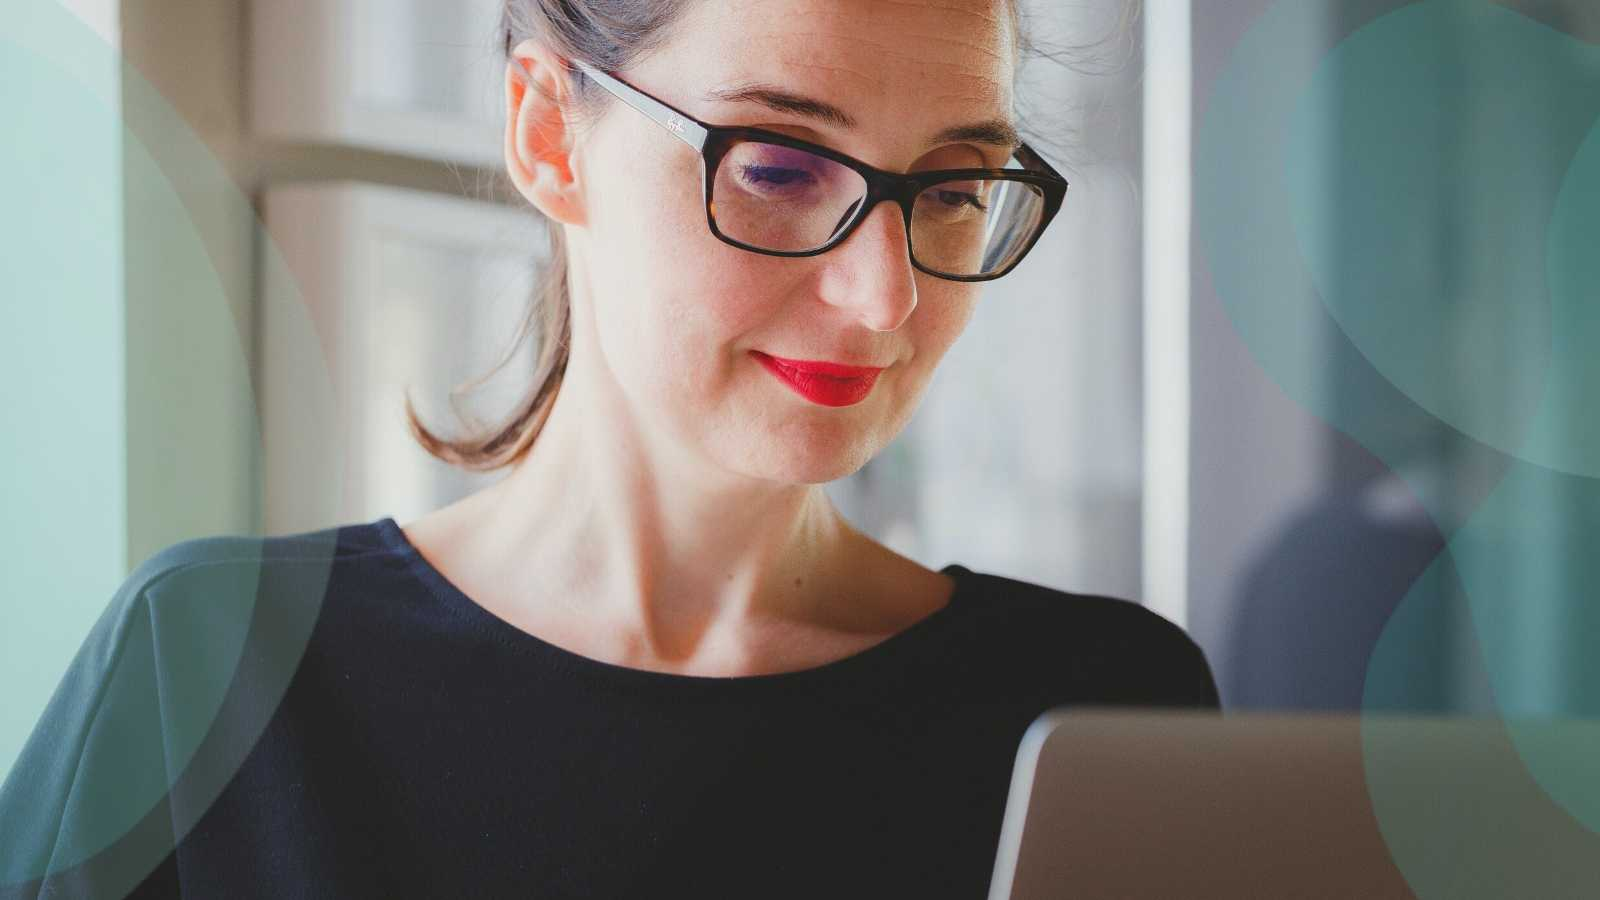 Woman with a kind face typing on her laptop. She is wearing thick-rimmed glasses and red lipstick.